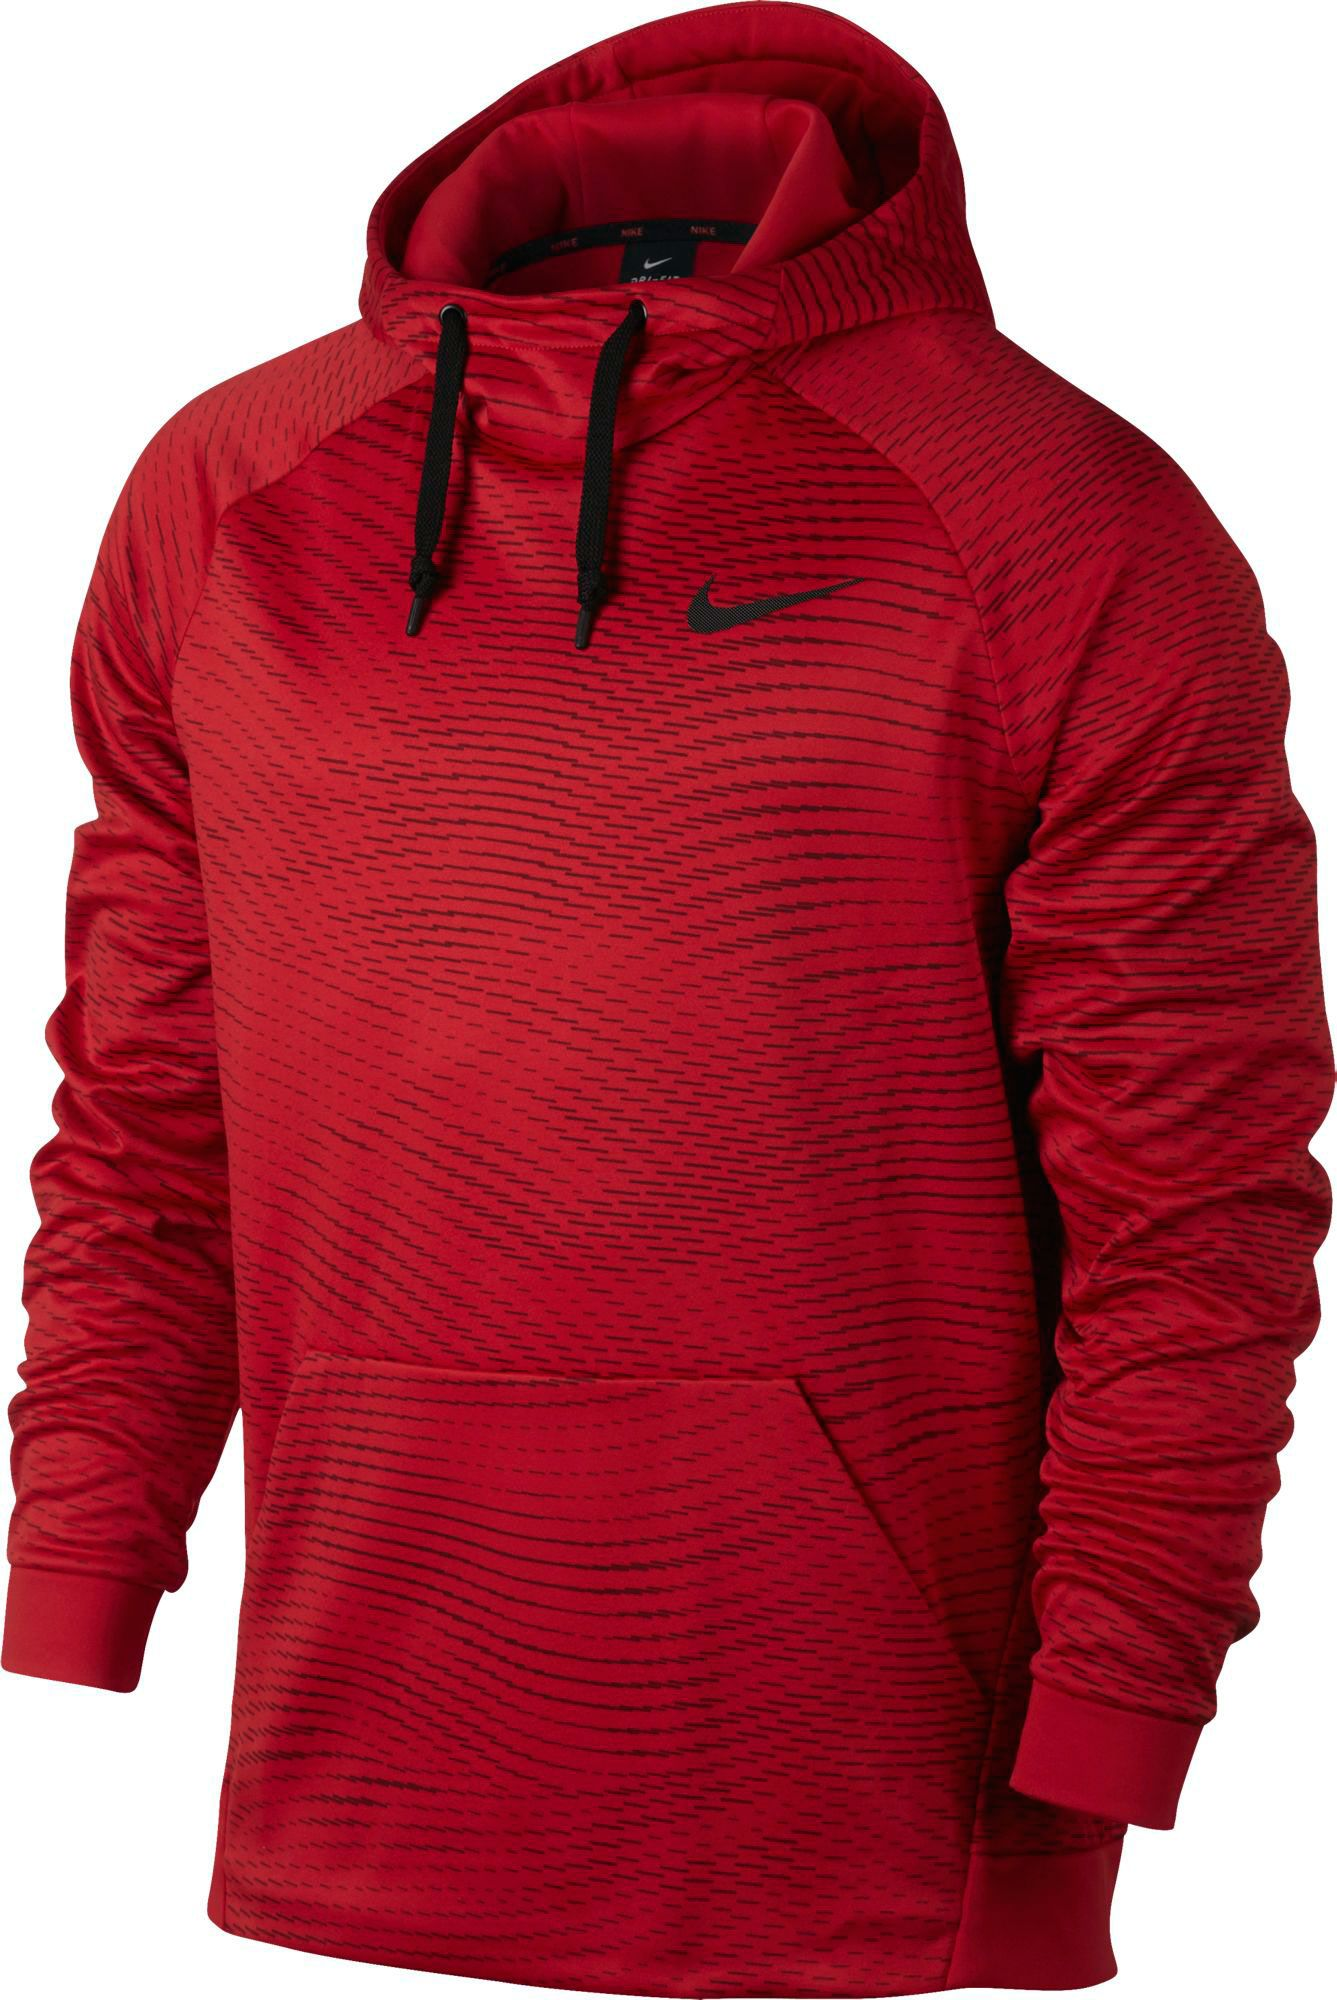 Nike Pullover Red | Covu Clothing